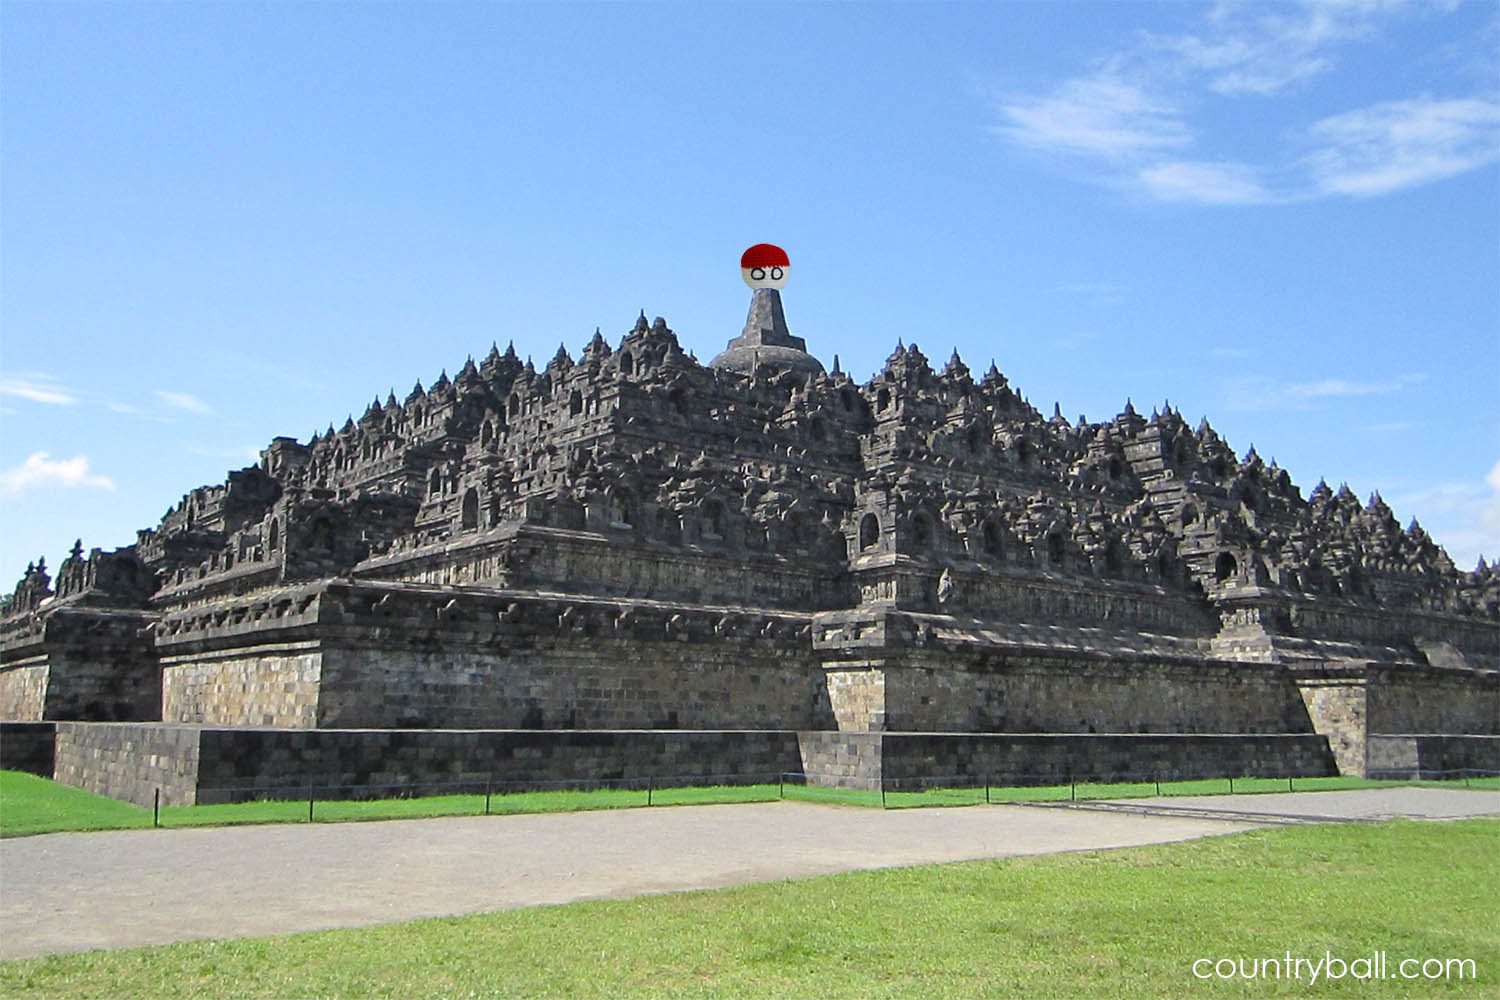 Indonesiaball at Borobodur Temple